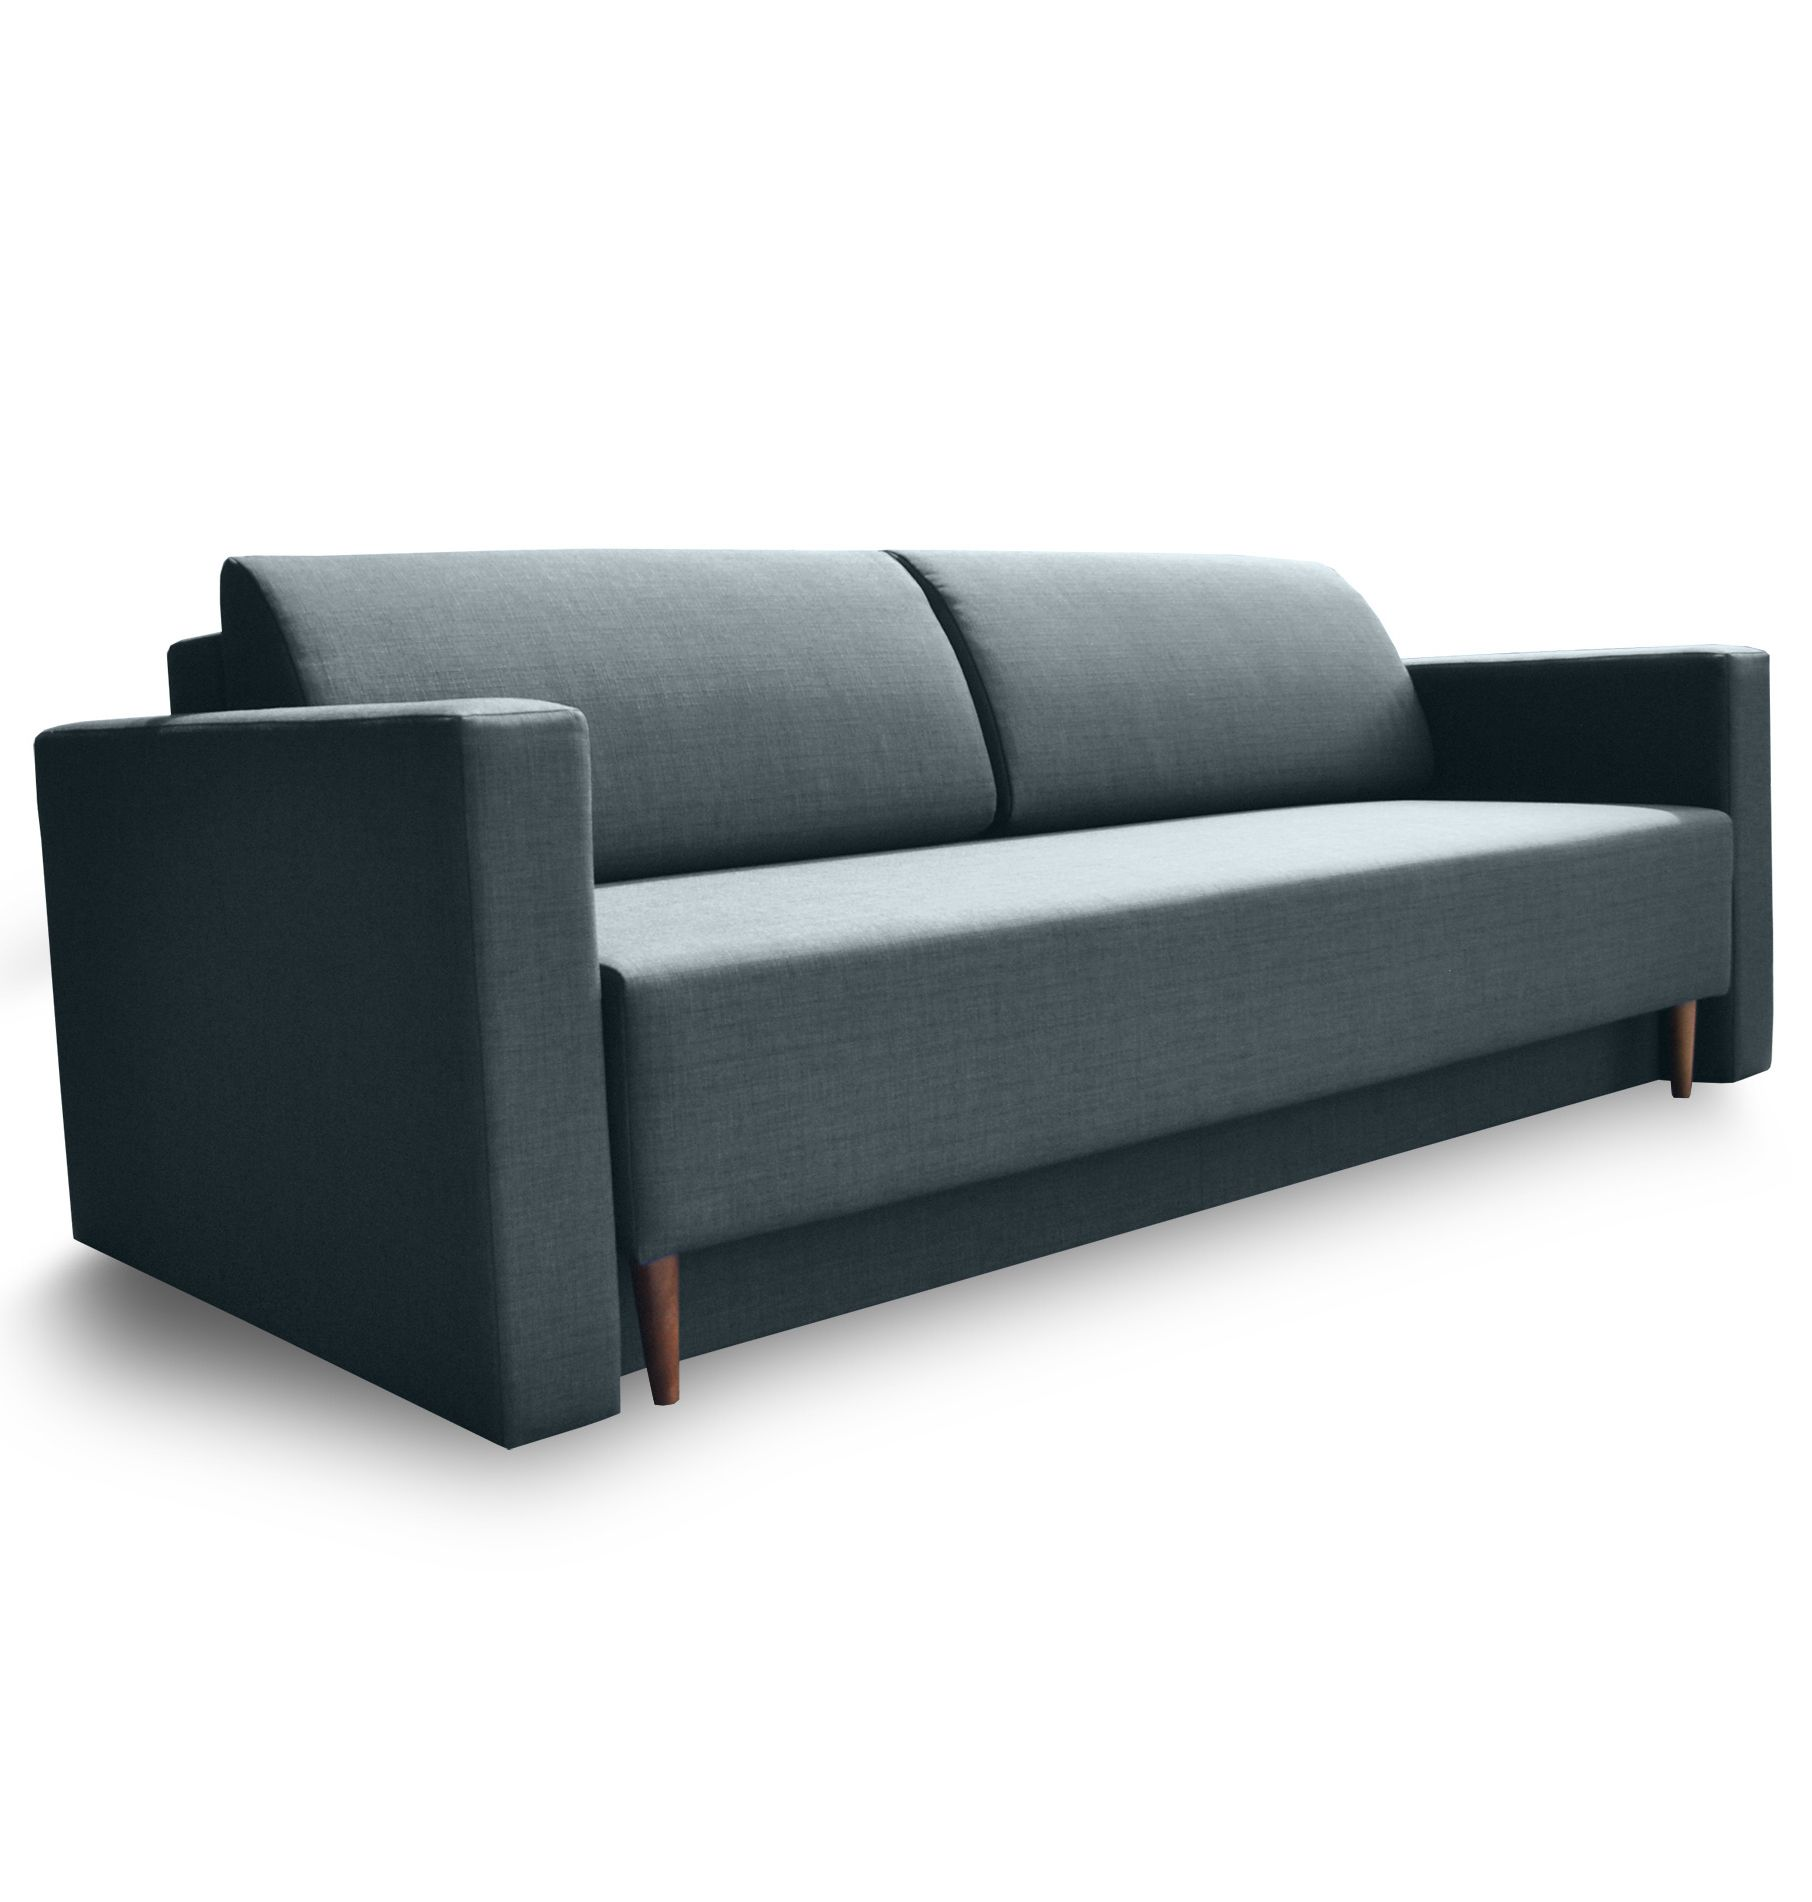 Dublin Mid Century Modern Sofa Bed In Denim Is A Minimalist Take On The Modern Couch It Accommodates A Practical Storage Space Un Stylish Sofa Beds Sofa